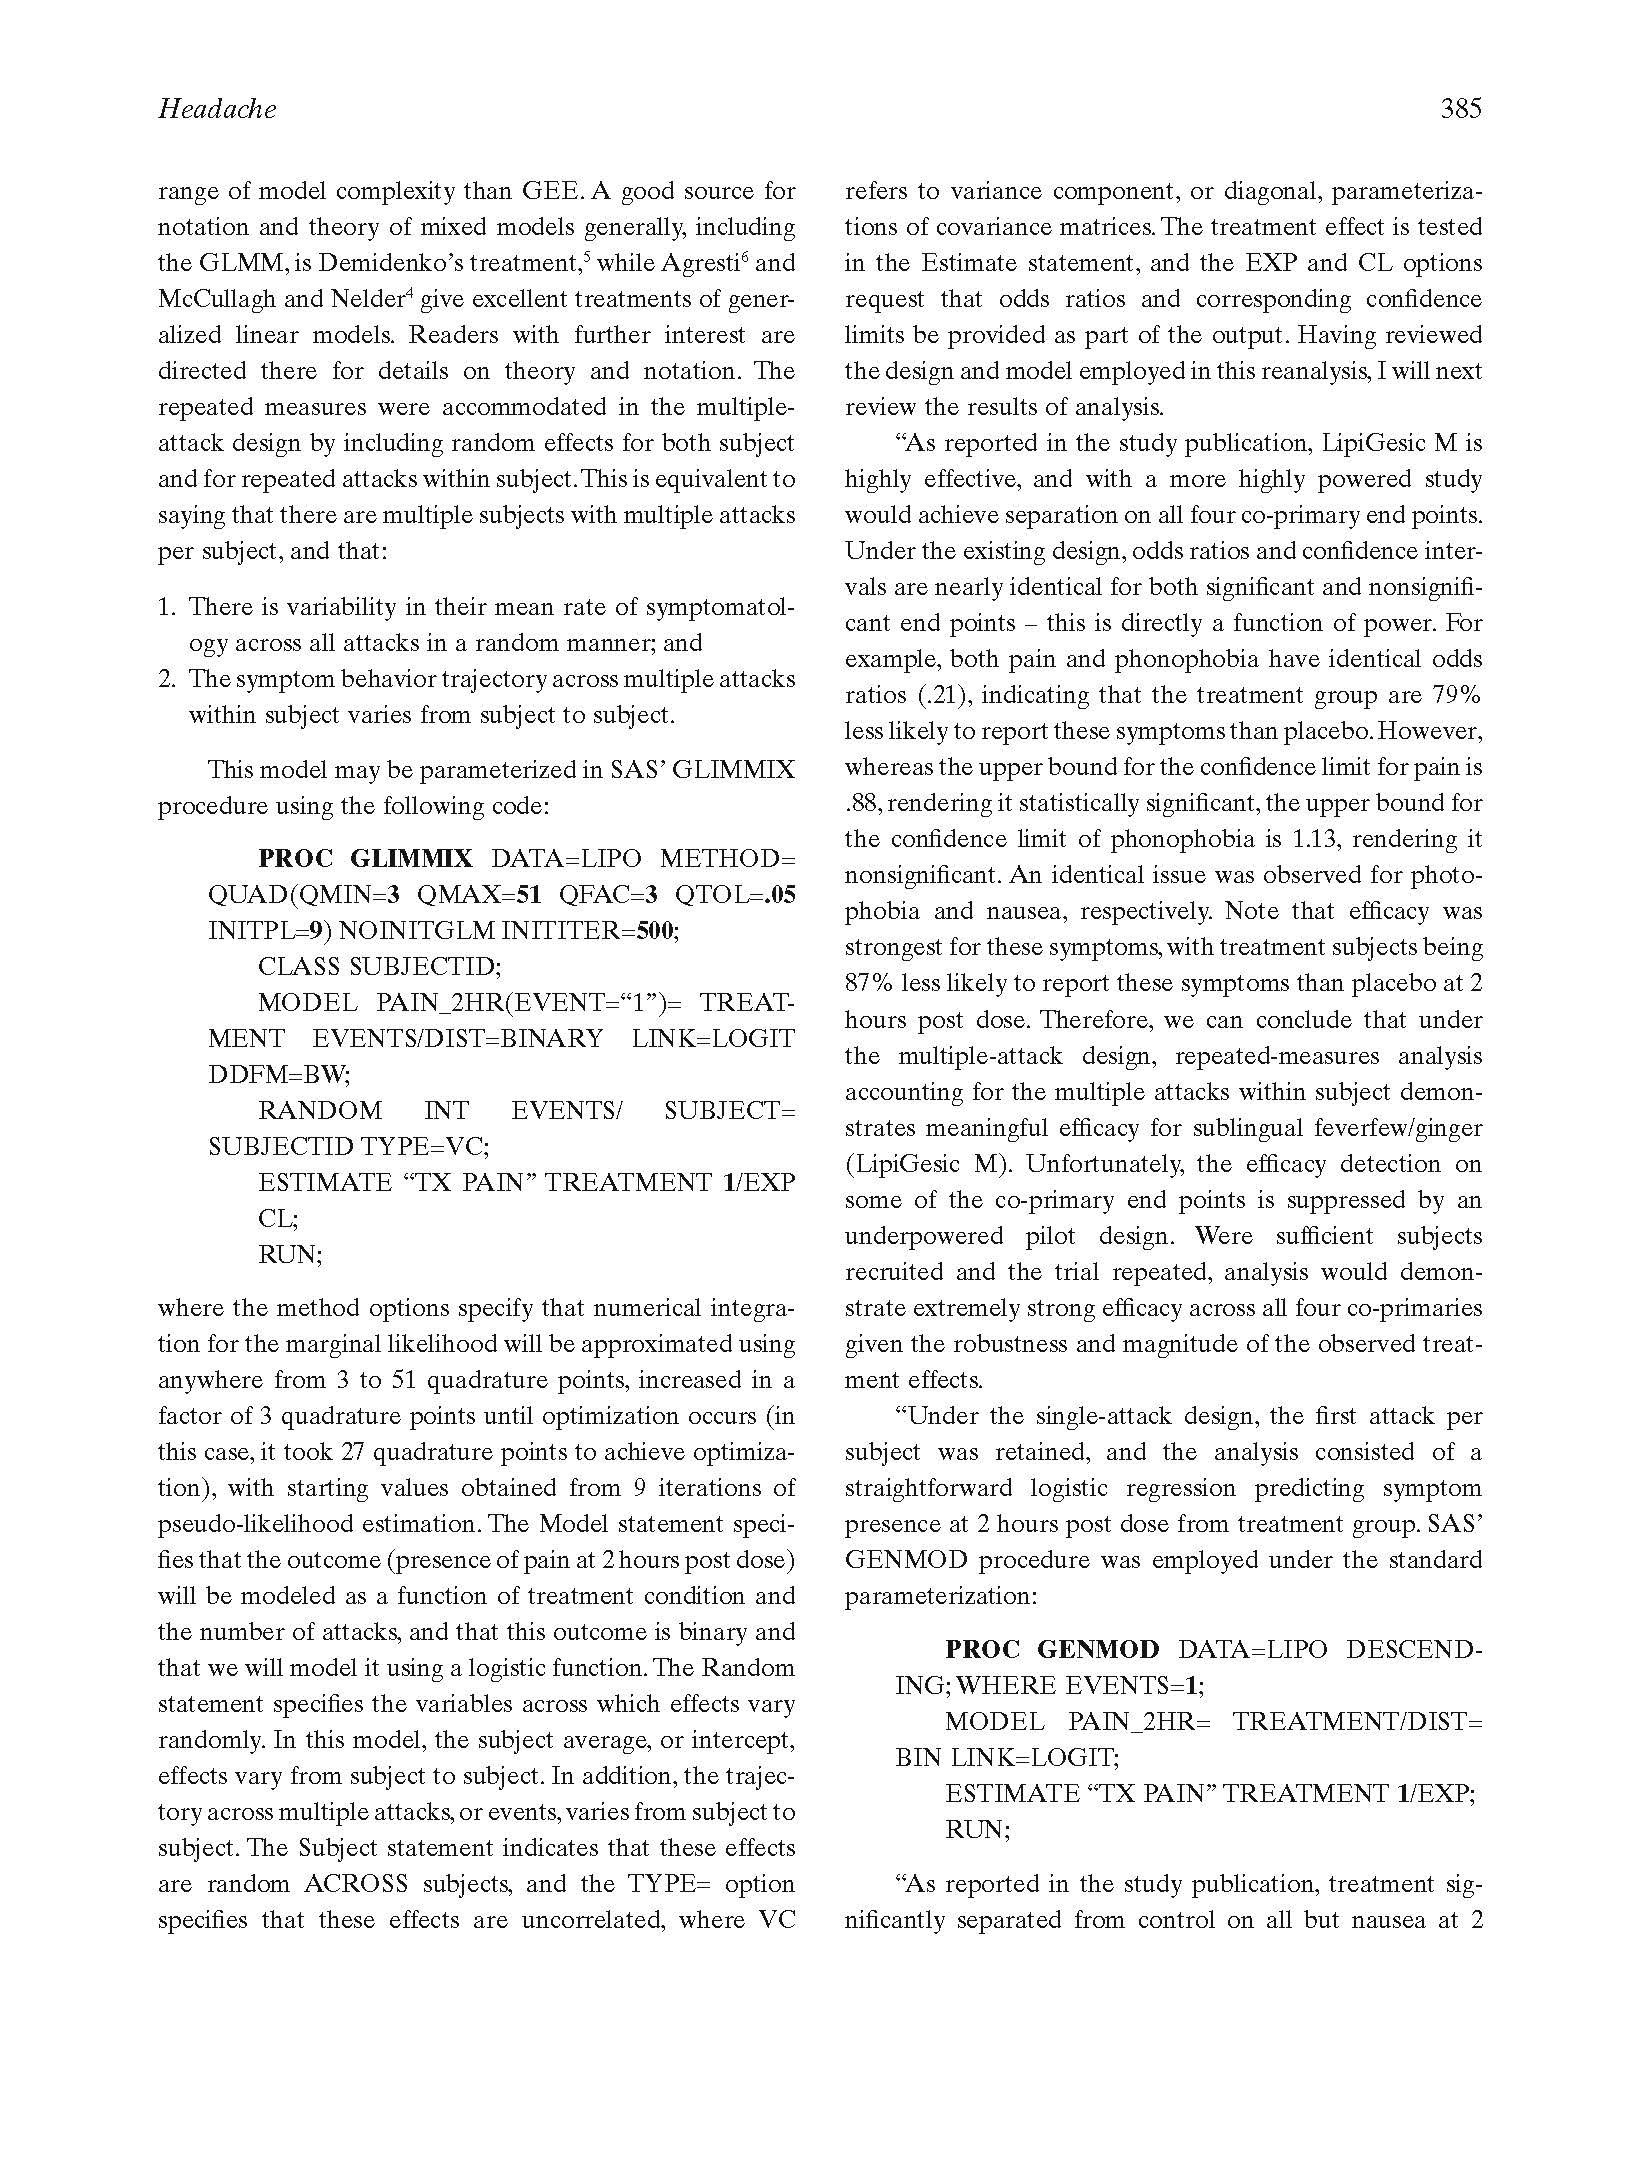 REANALYSIS ARTICLE_Page_2.jpg